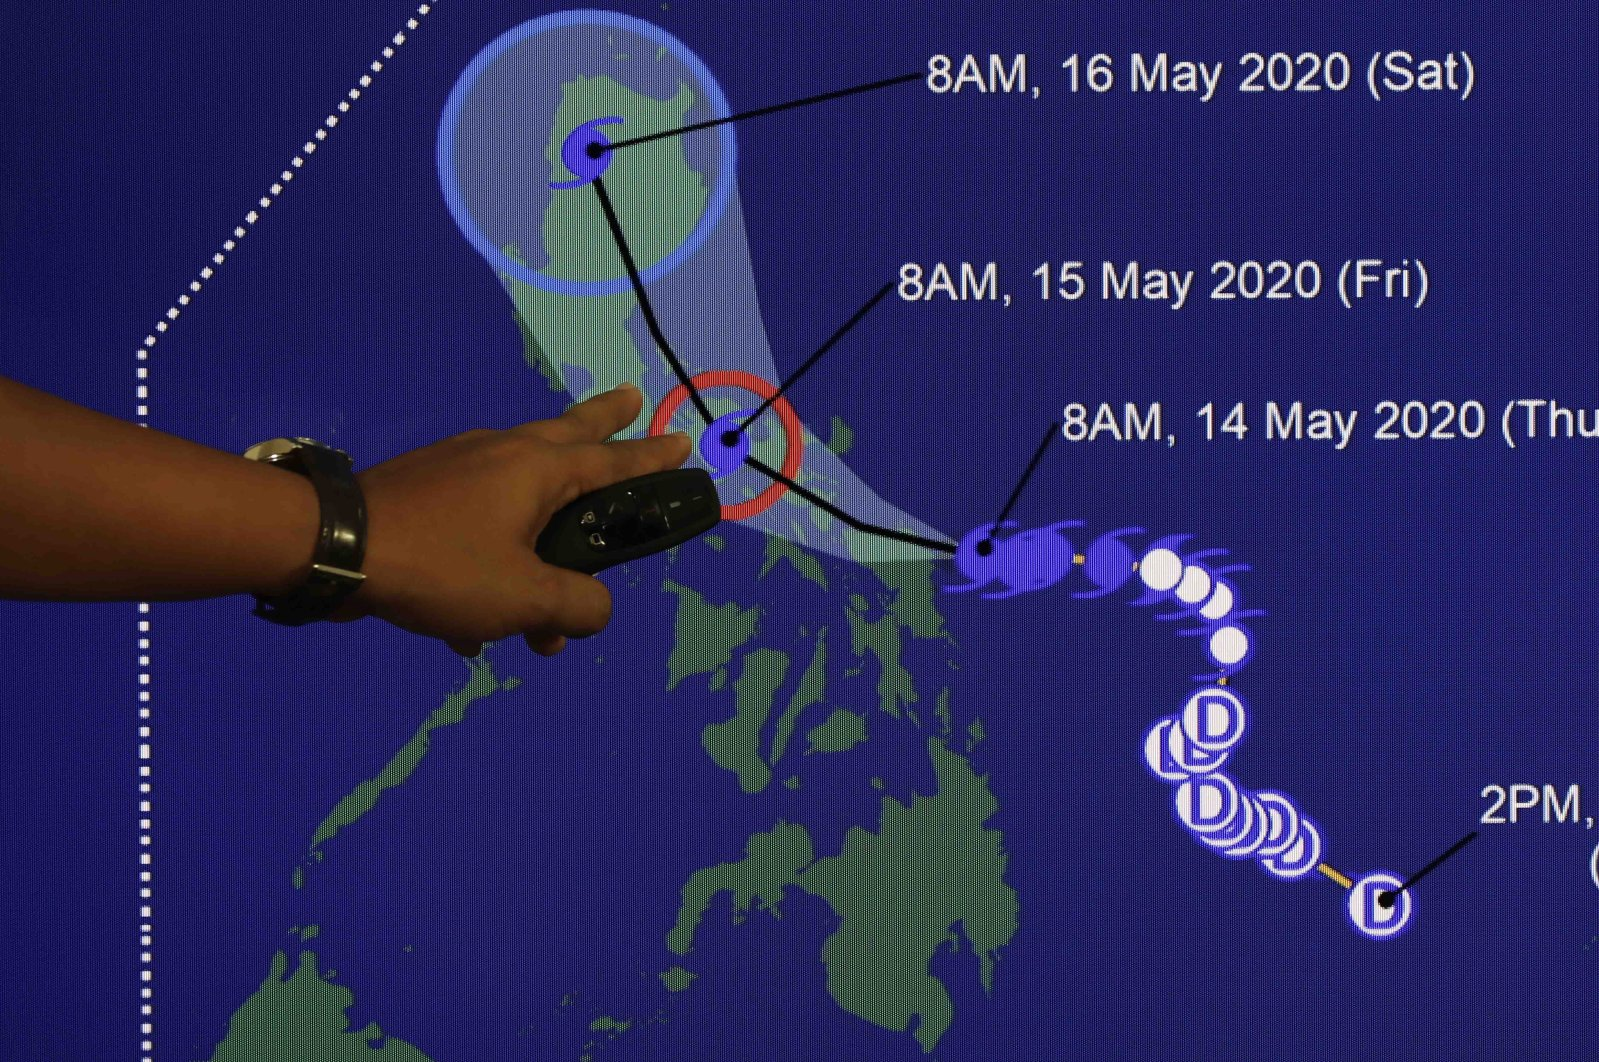 Weather forecaster Christopher Perez points to a projected track of Typhoon Vongfong during a briefing at the Philippine Atmospheric Geophysical and Astronomical Services Administration (PAGASA) headquarters, Quezon City, Metro Manila, Philippines, May 14, 2020. (EPA Photo)